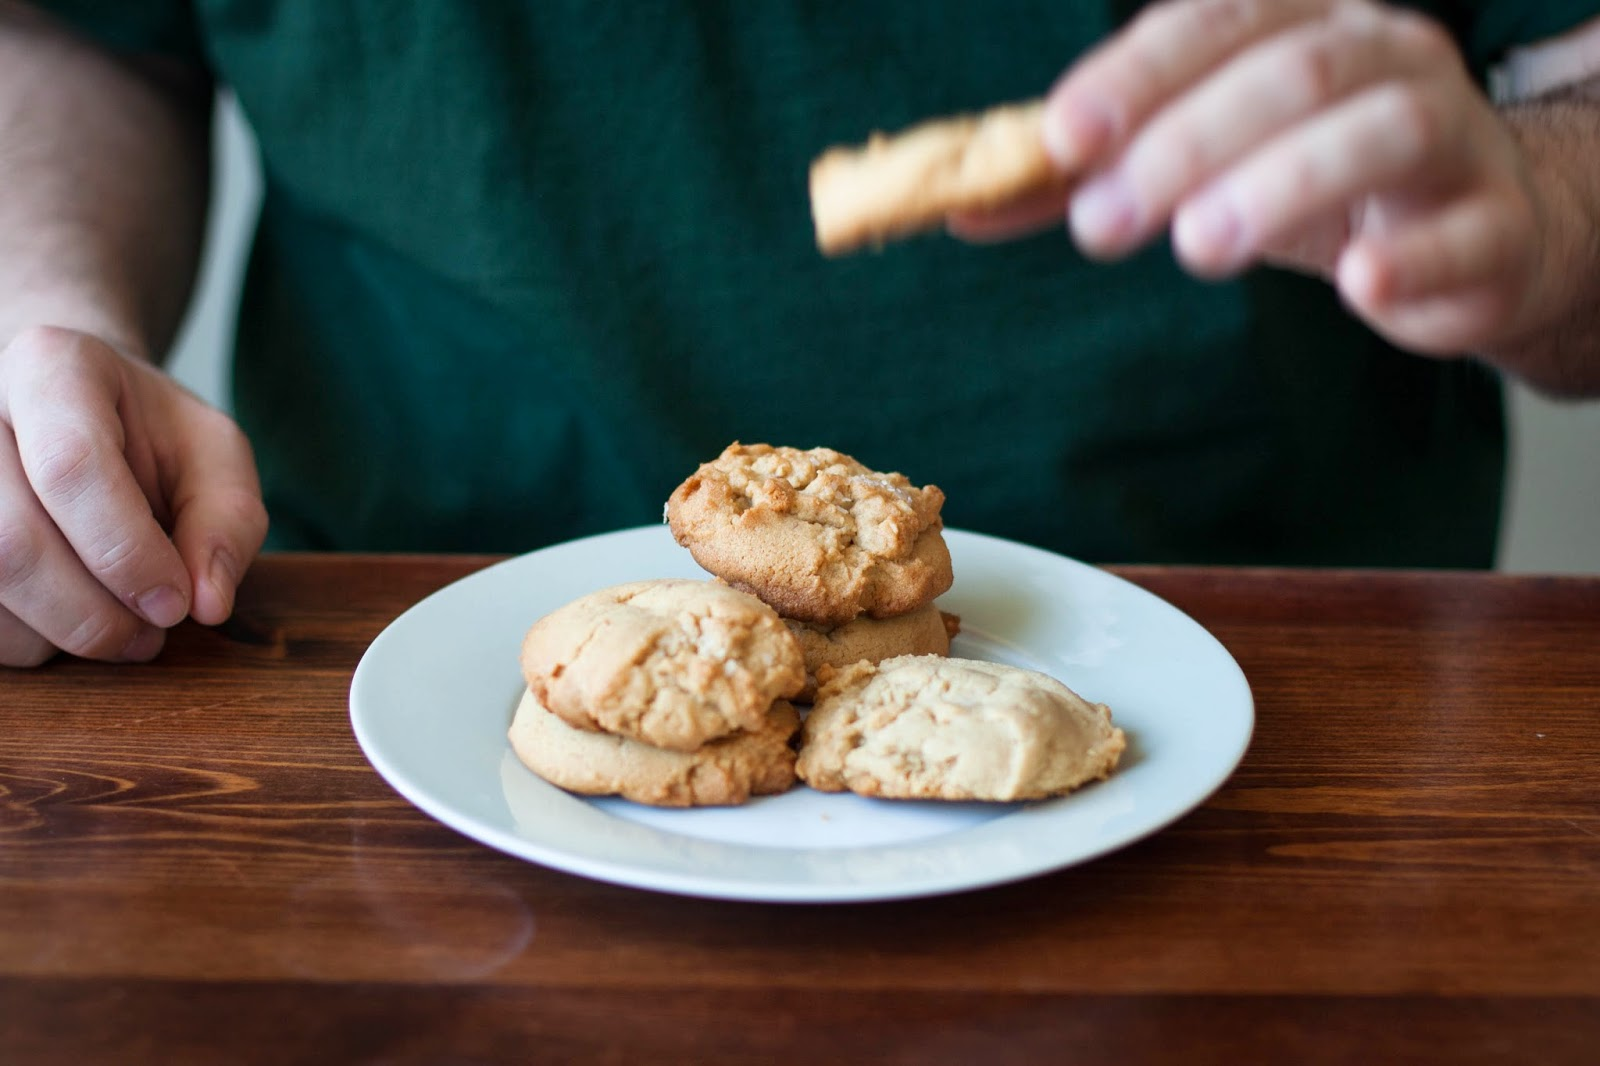 Buttered Up: Peanut Butter Sandies